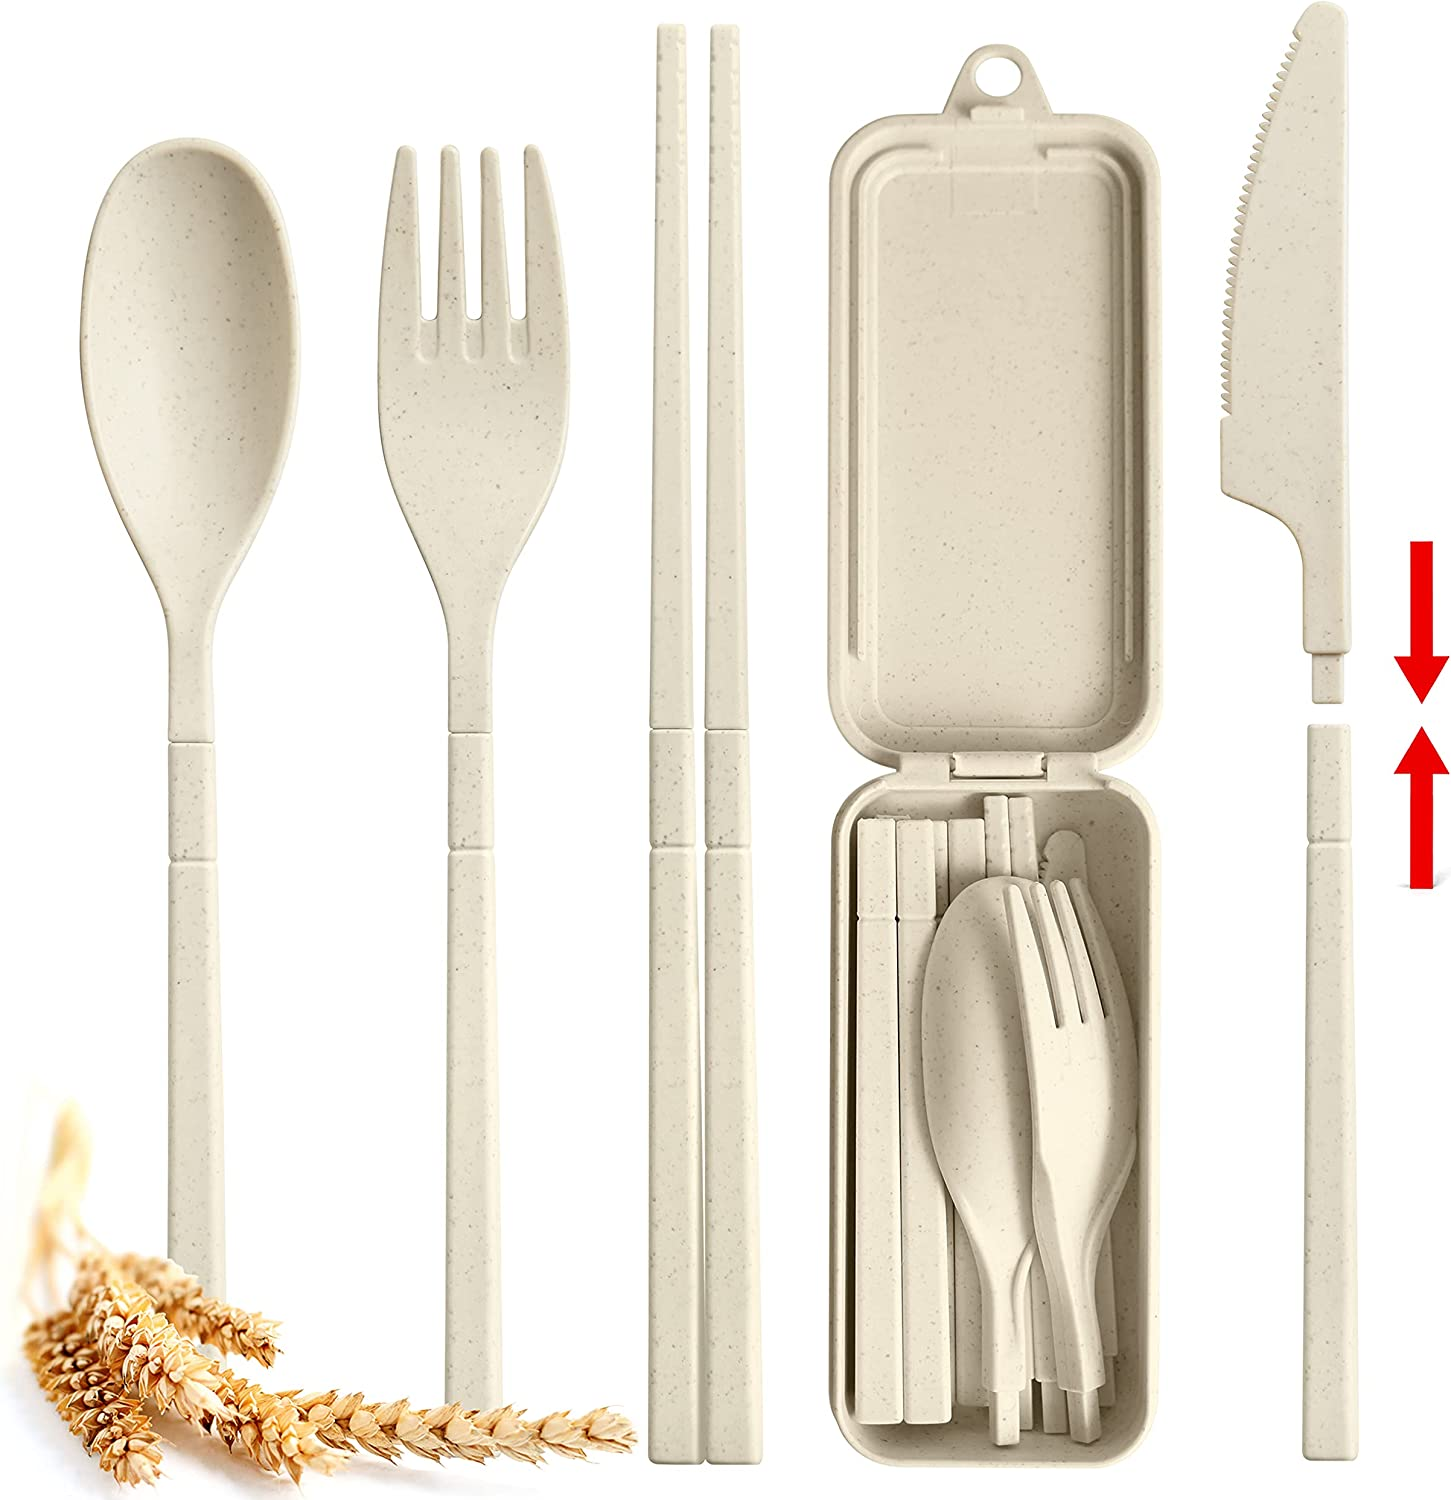 Pocket Max Special sale item 86% OFF Sized Wheat Straw Plastic Travel Cutlery by Set With Case